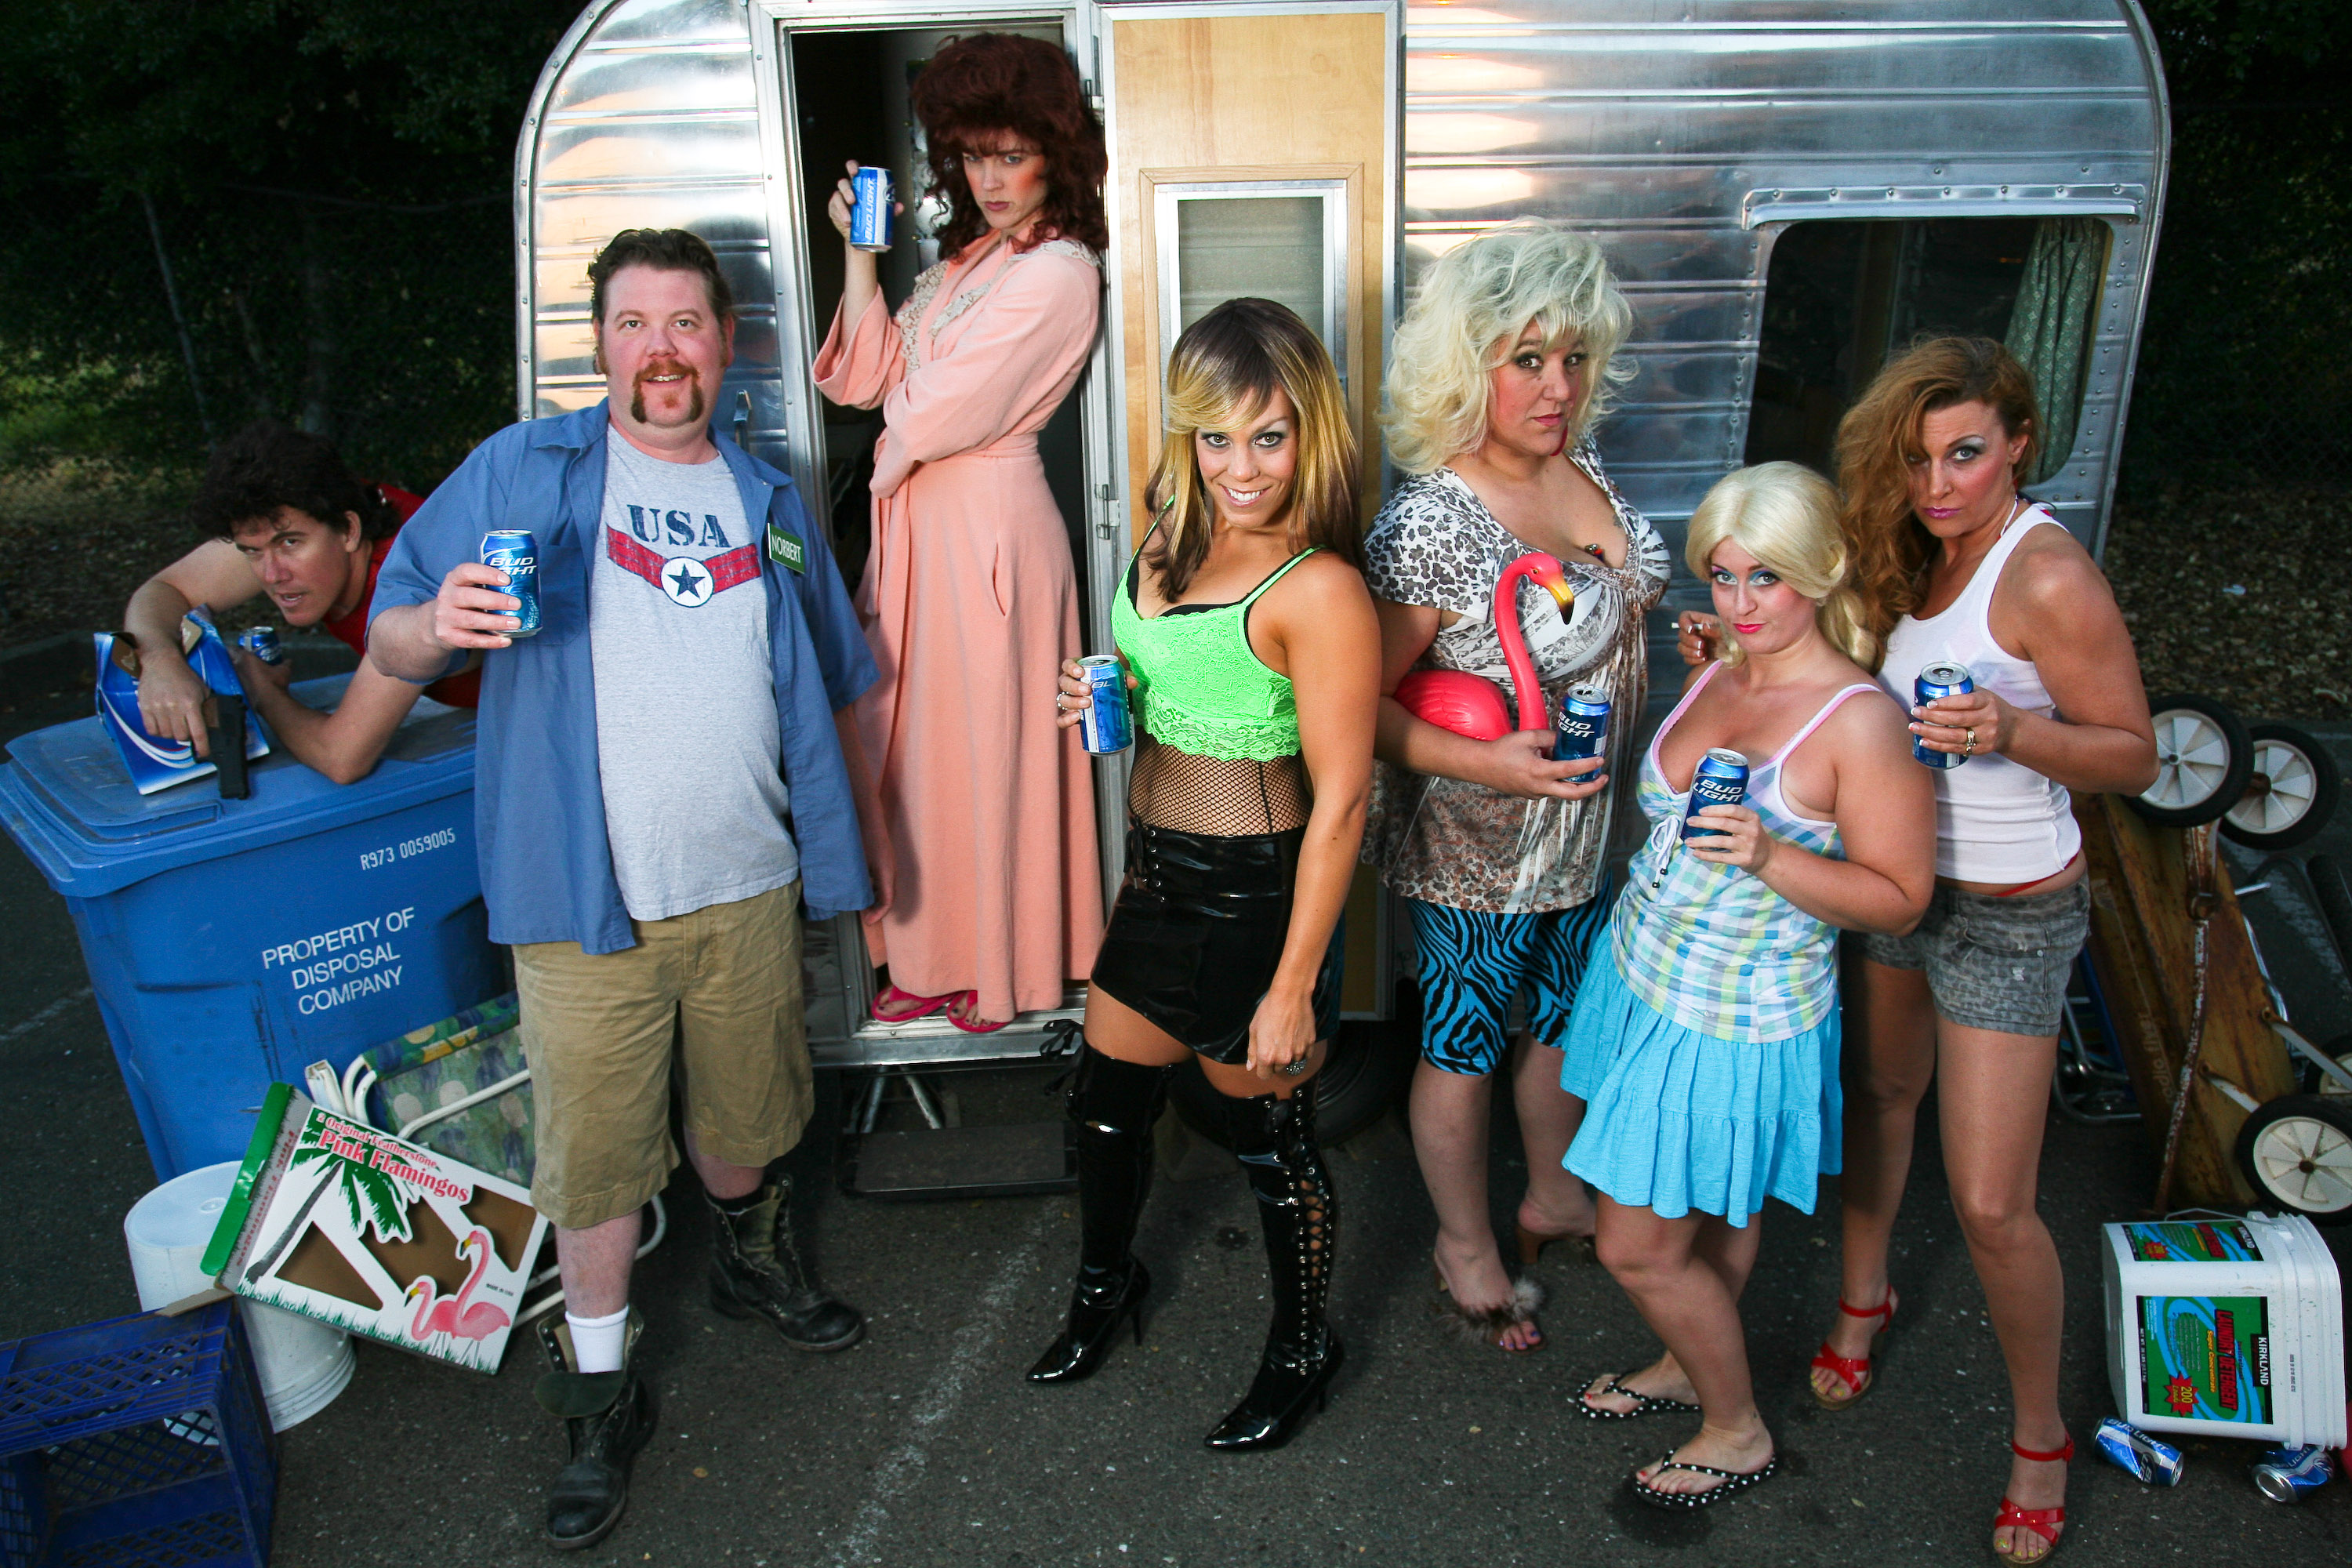 https://genevaanderson.files.wordpress.com/2012/09/trailer-park-4302.jpg